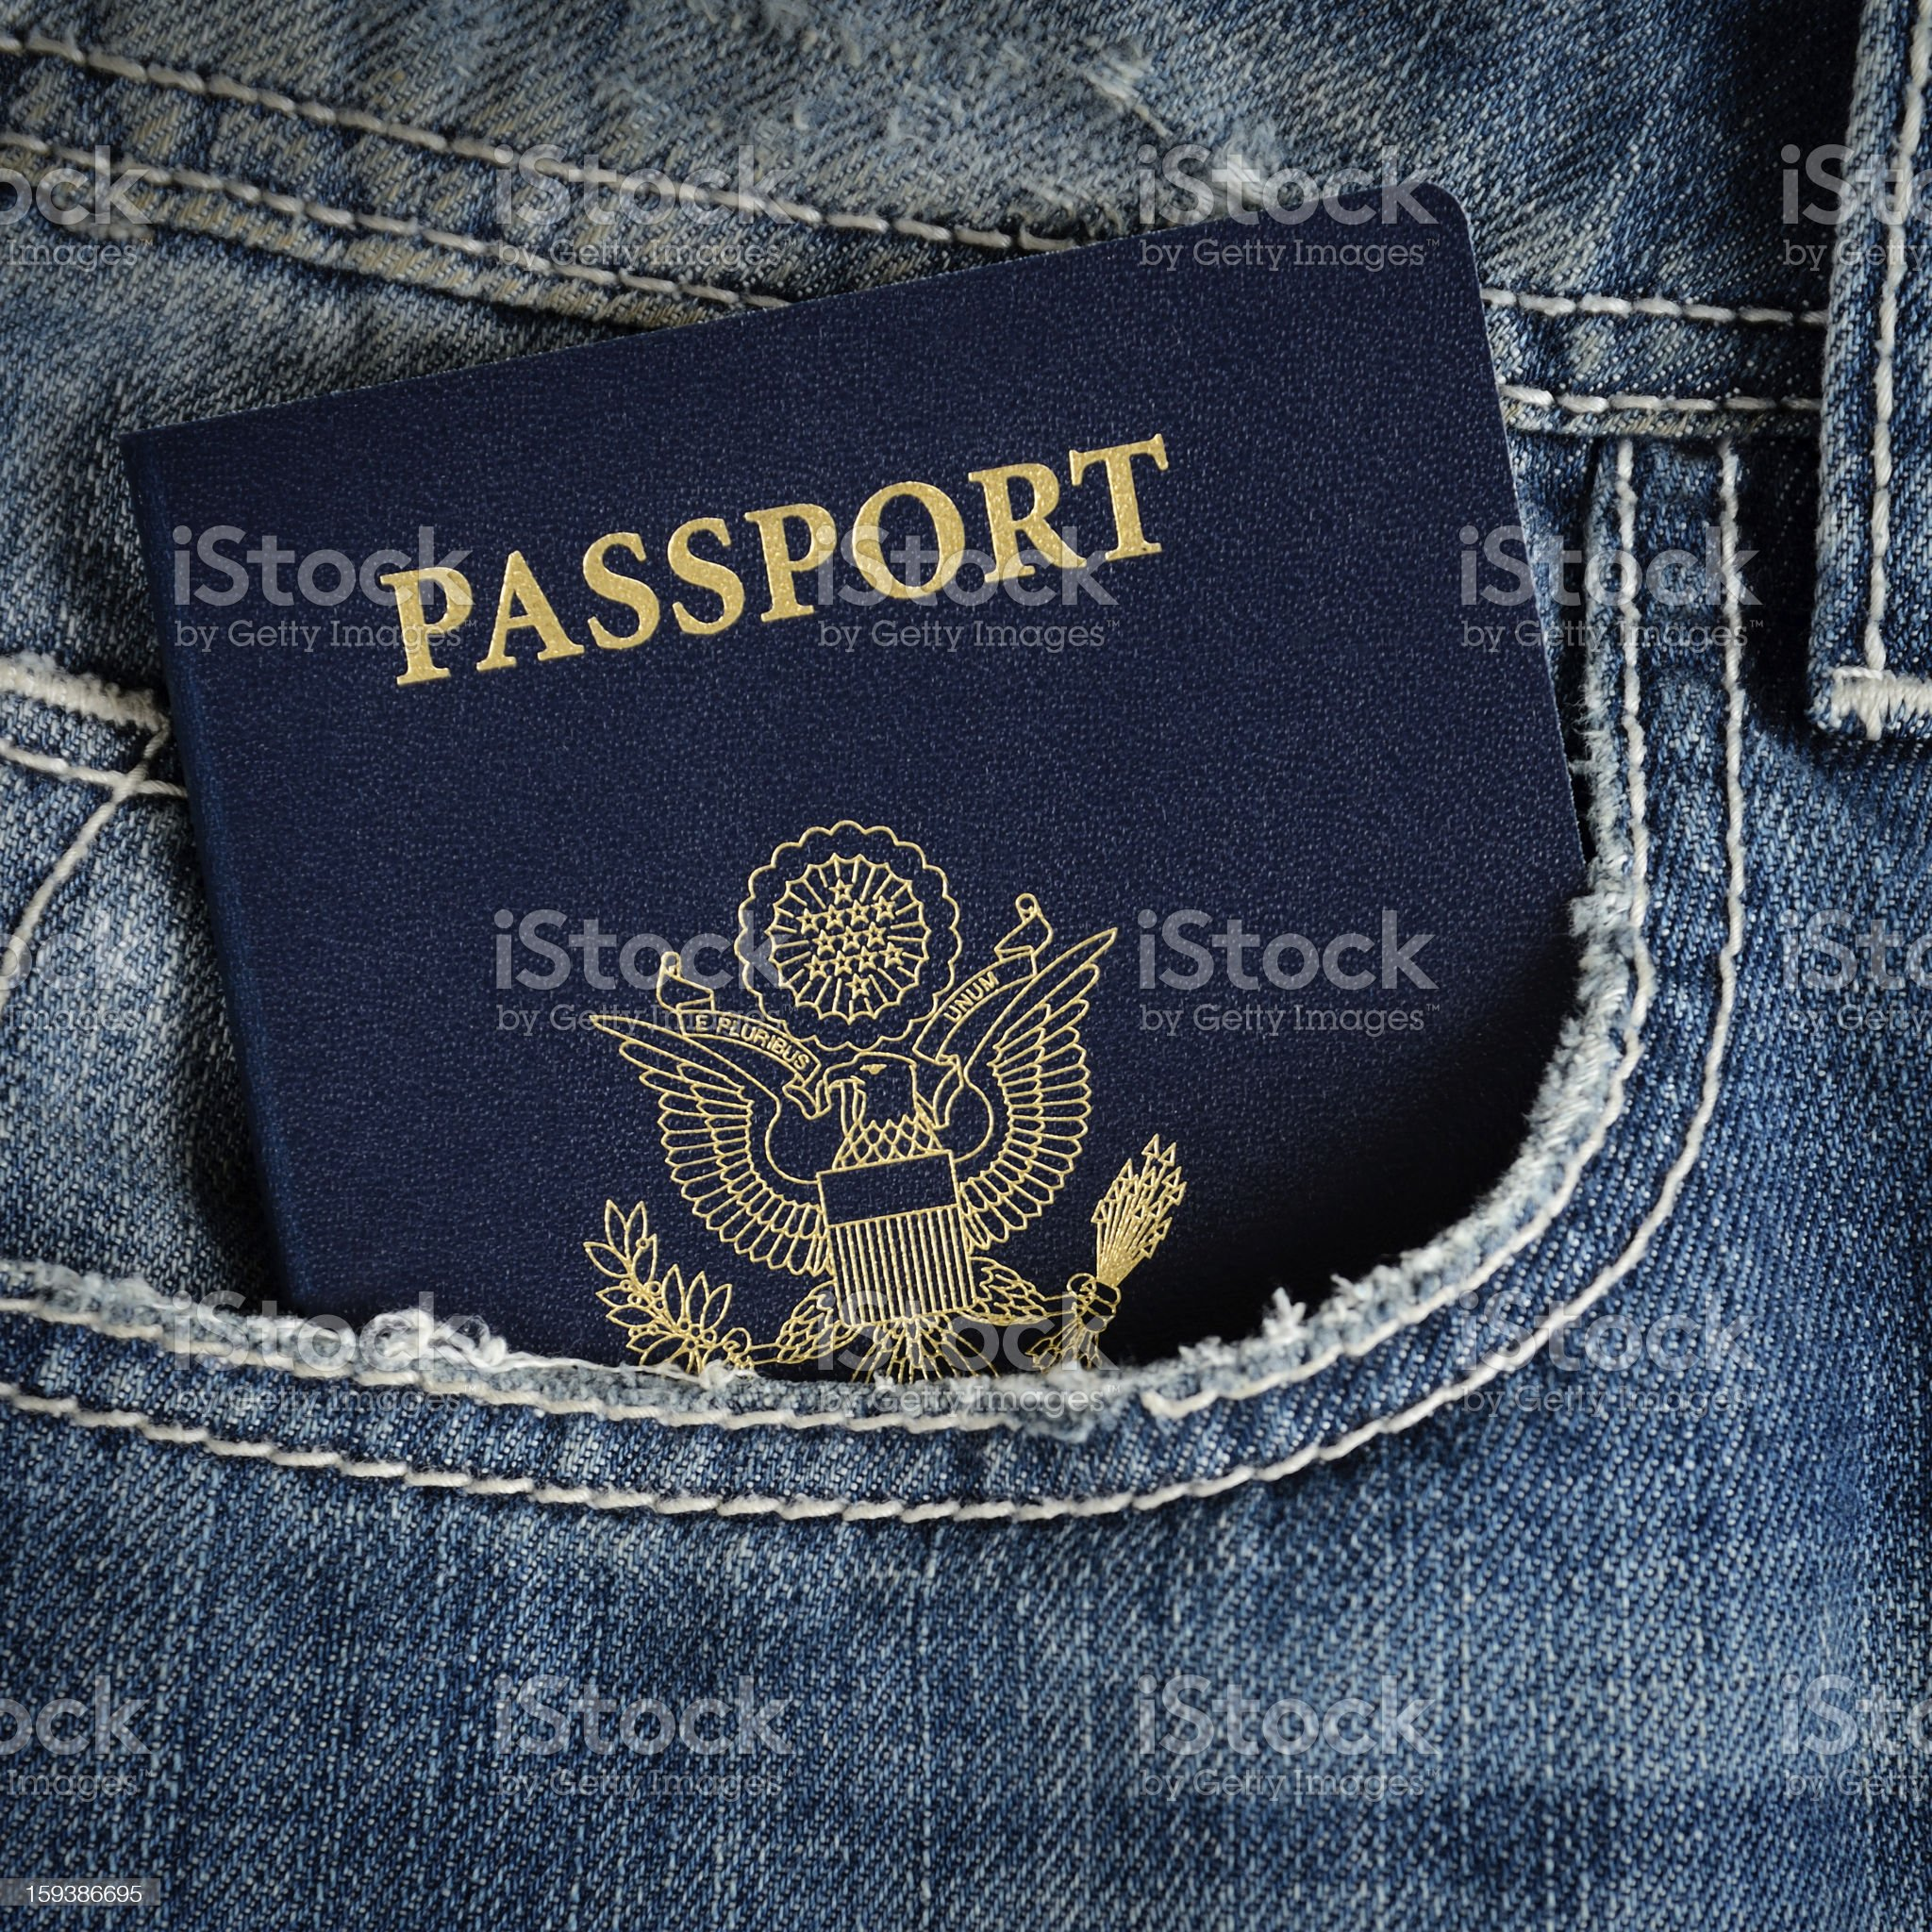 us passport in jeans royalty-free stock photo